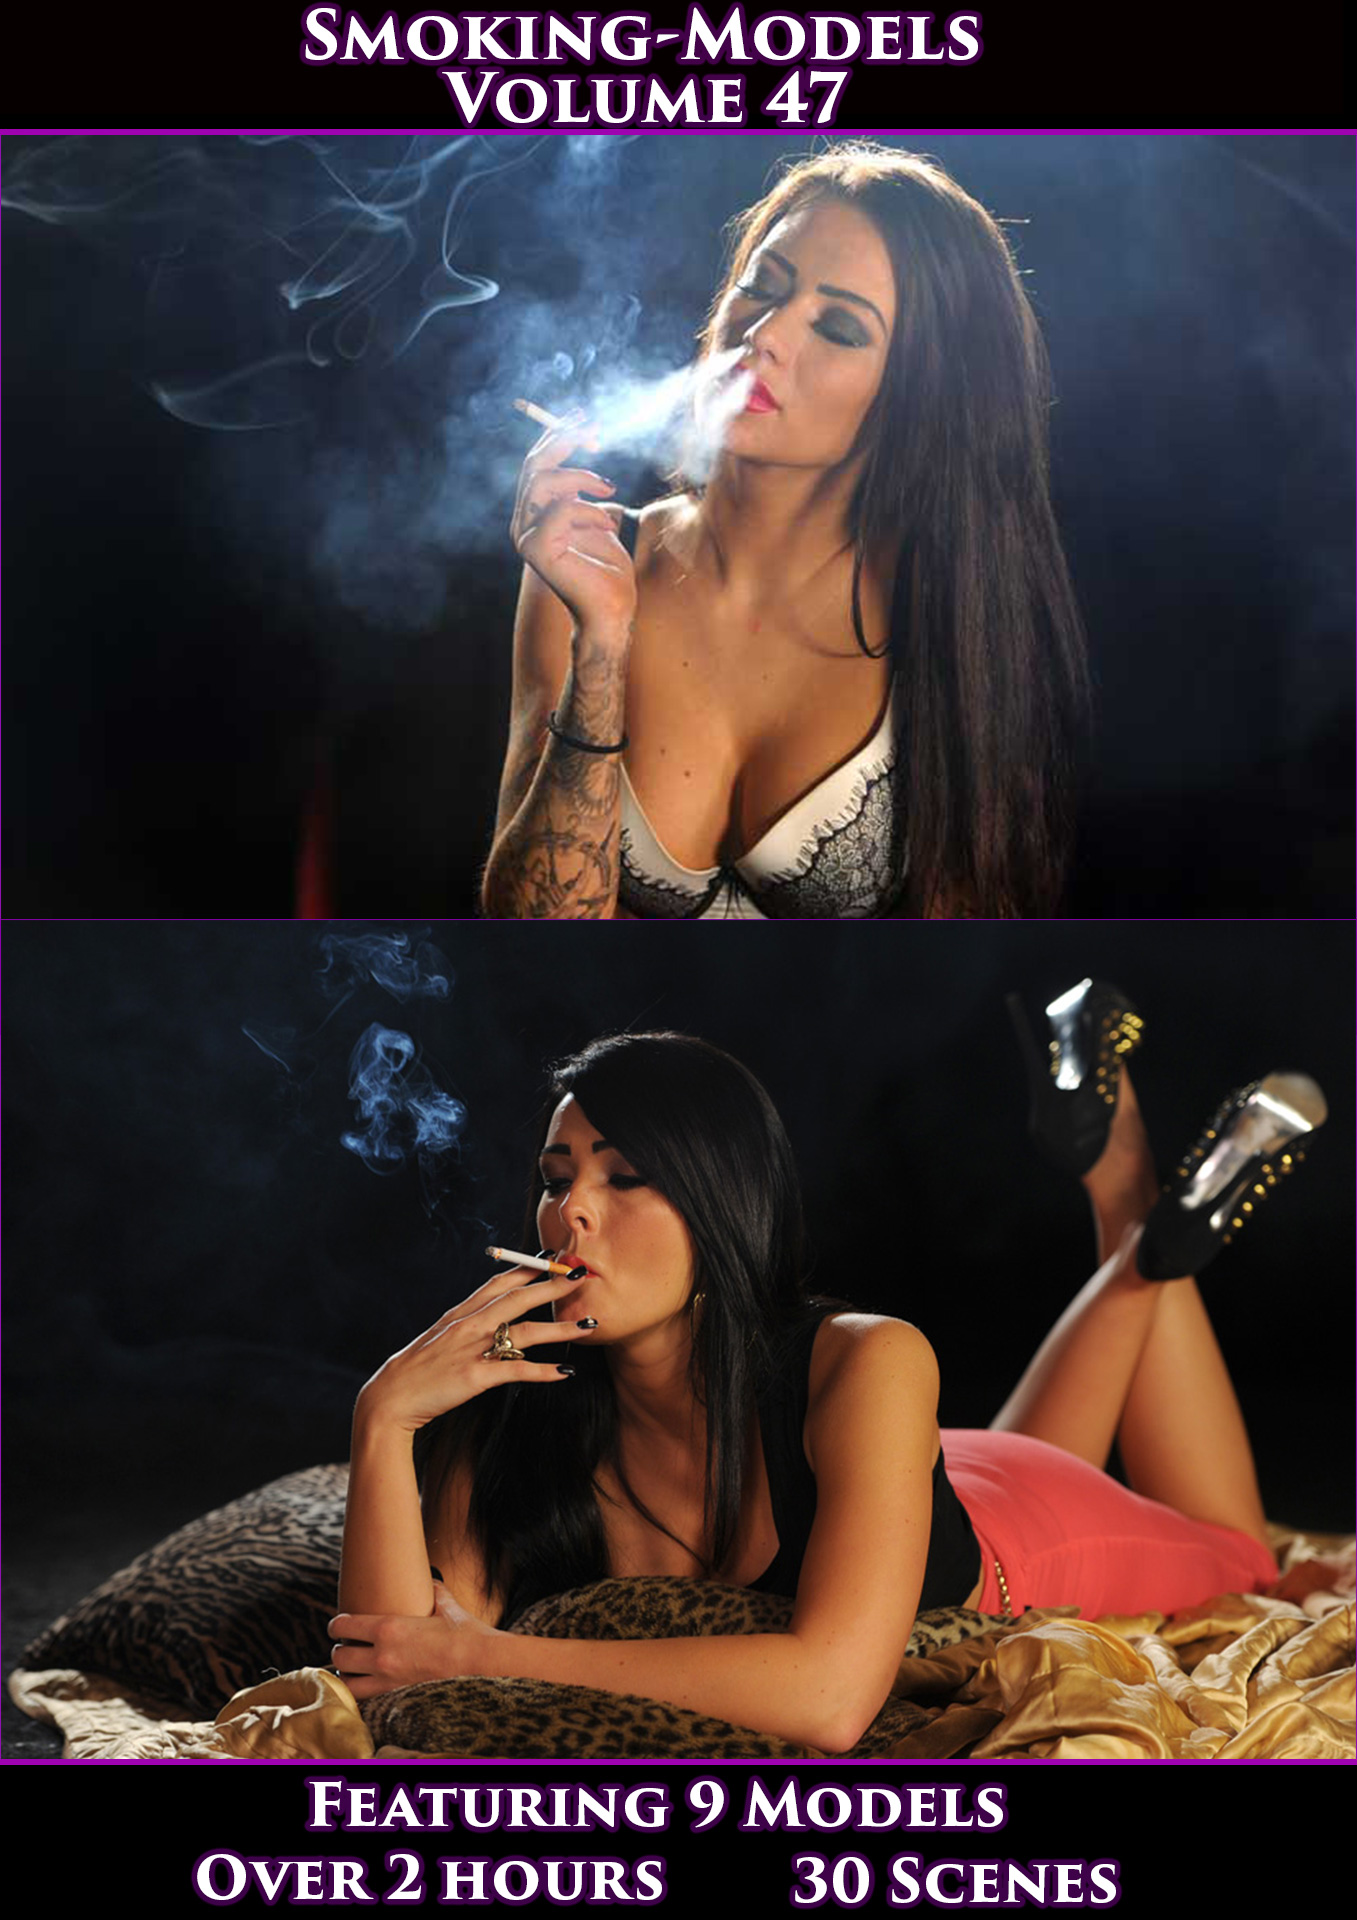 smoking-models-45-front.jpg